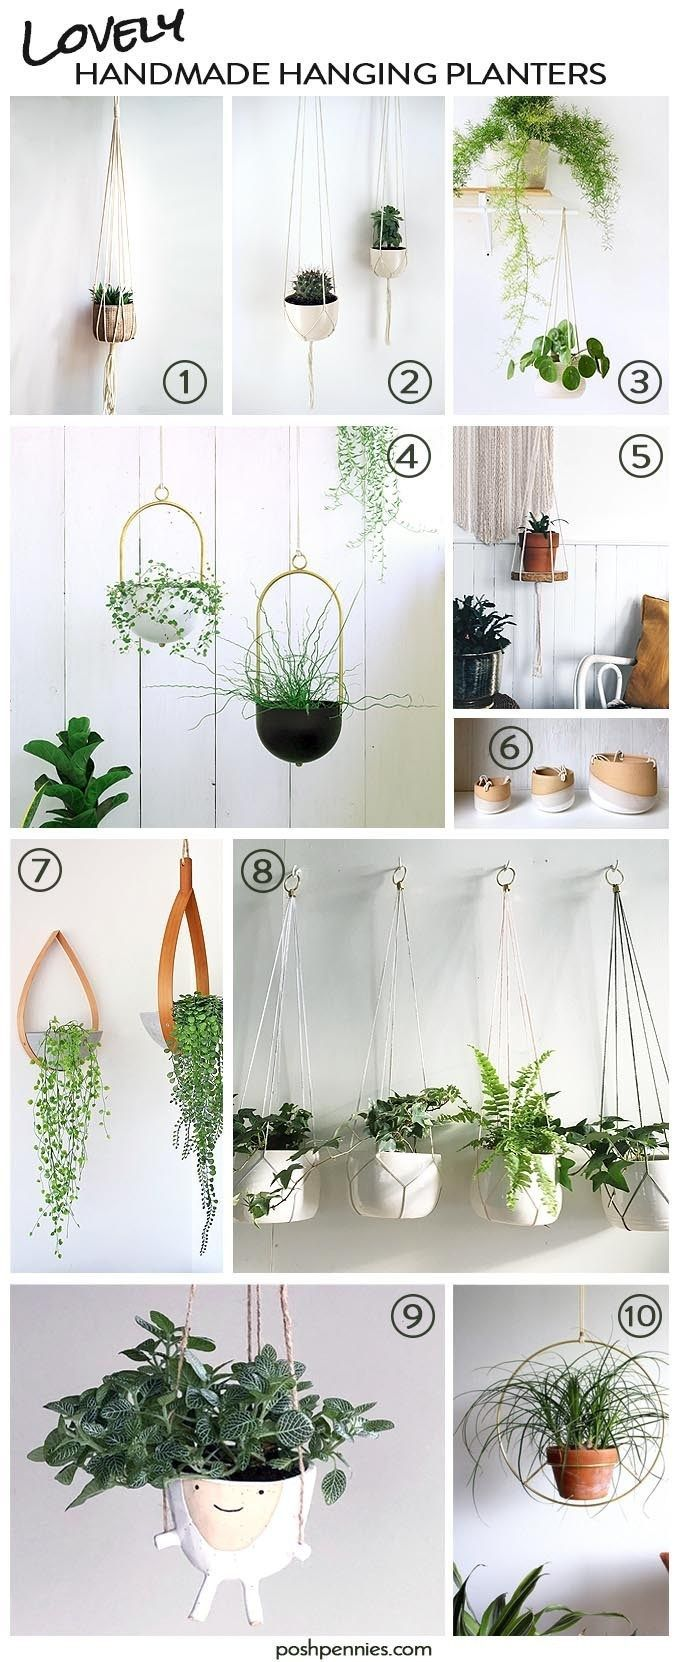 Indoor Hanging Plants that are Hard to Kill  Easy to Love  all the best handmade hanging planters right here